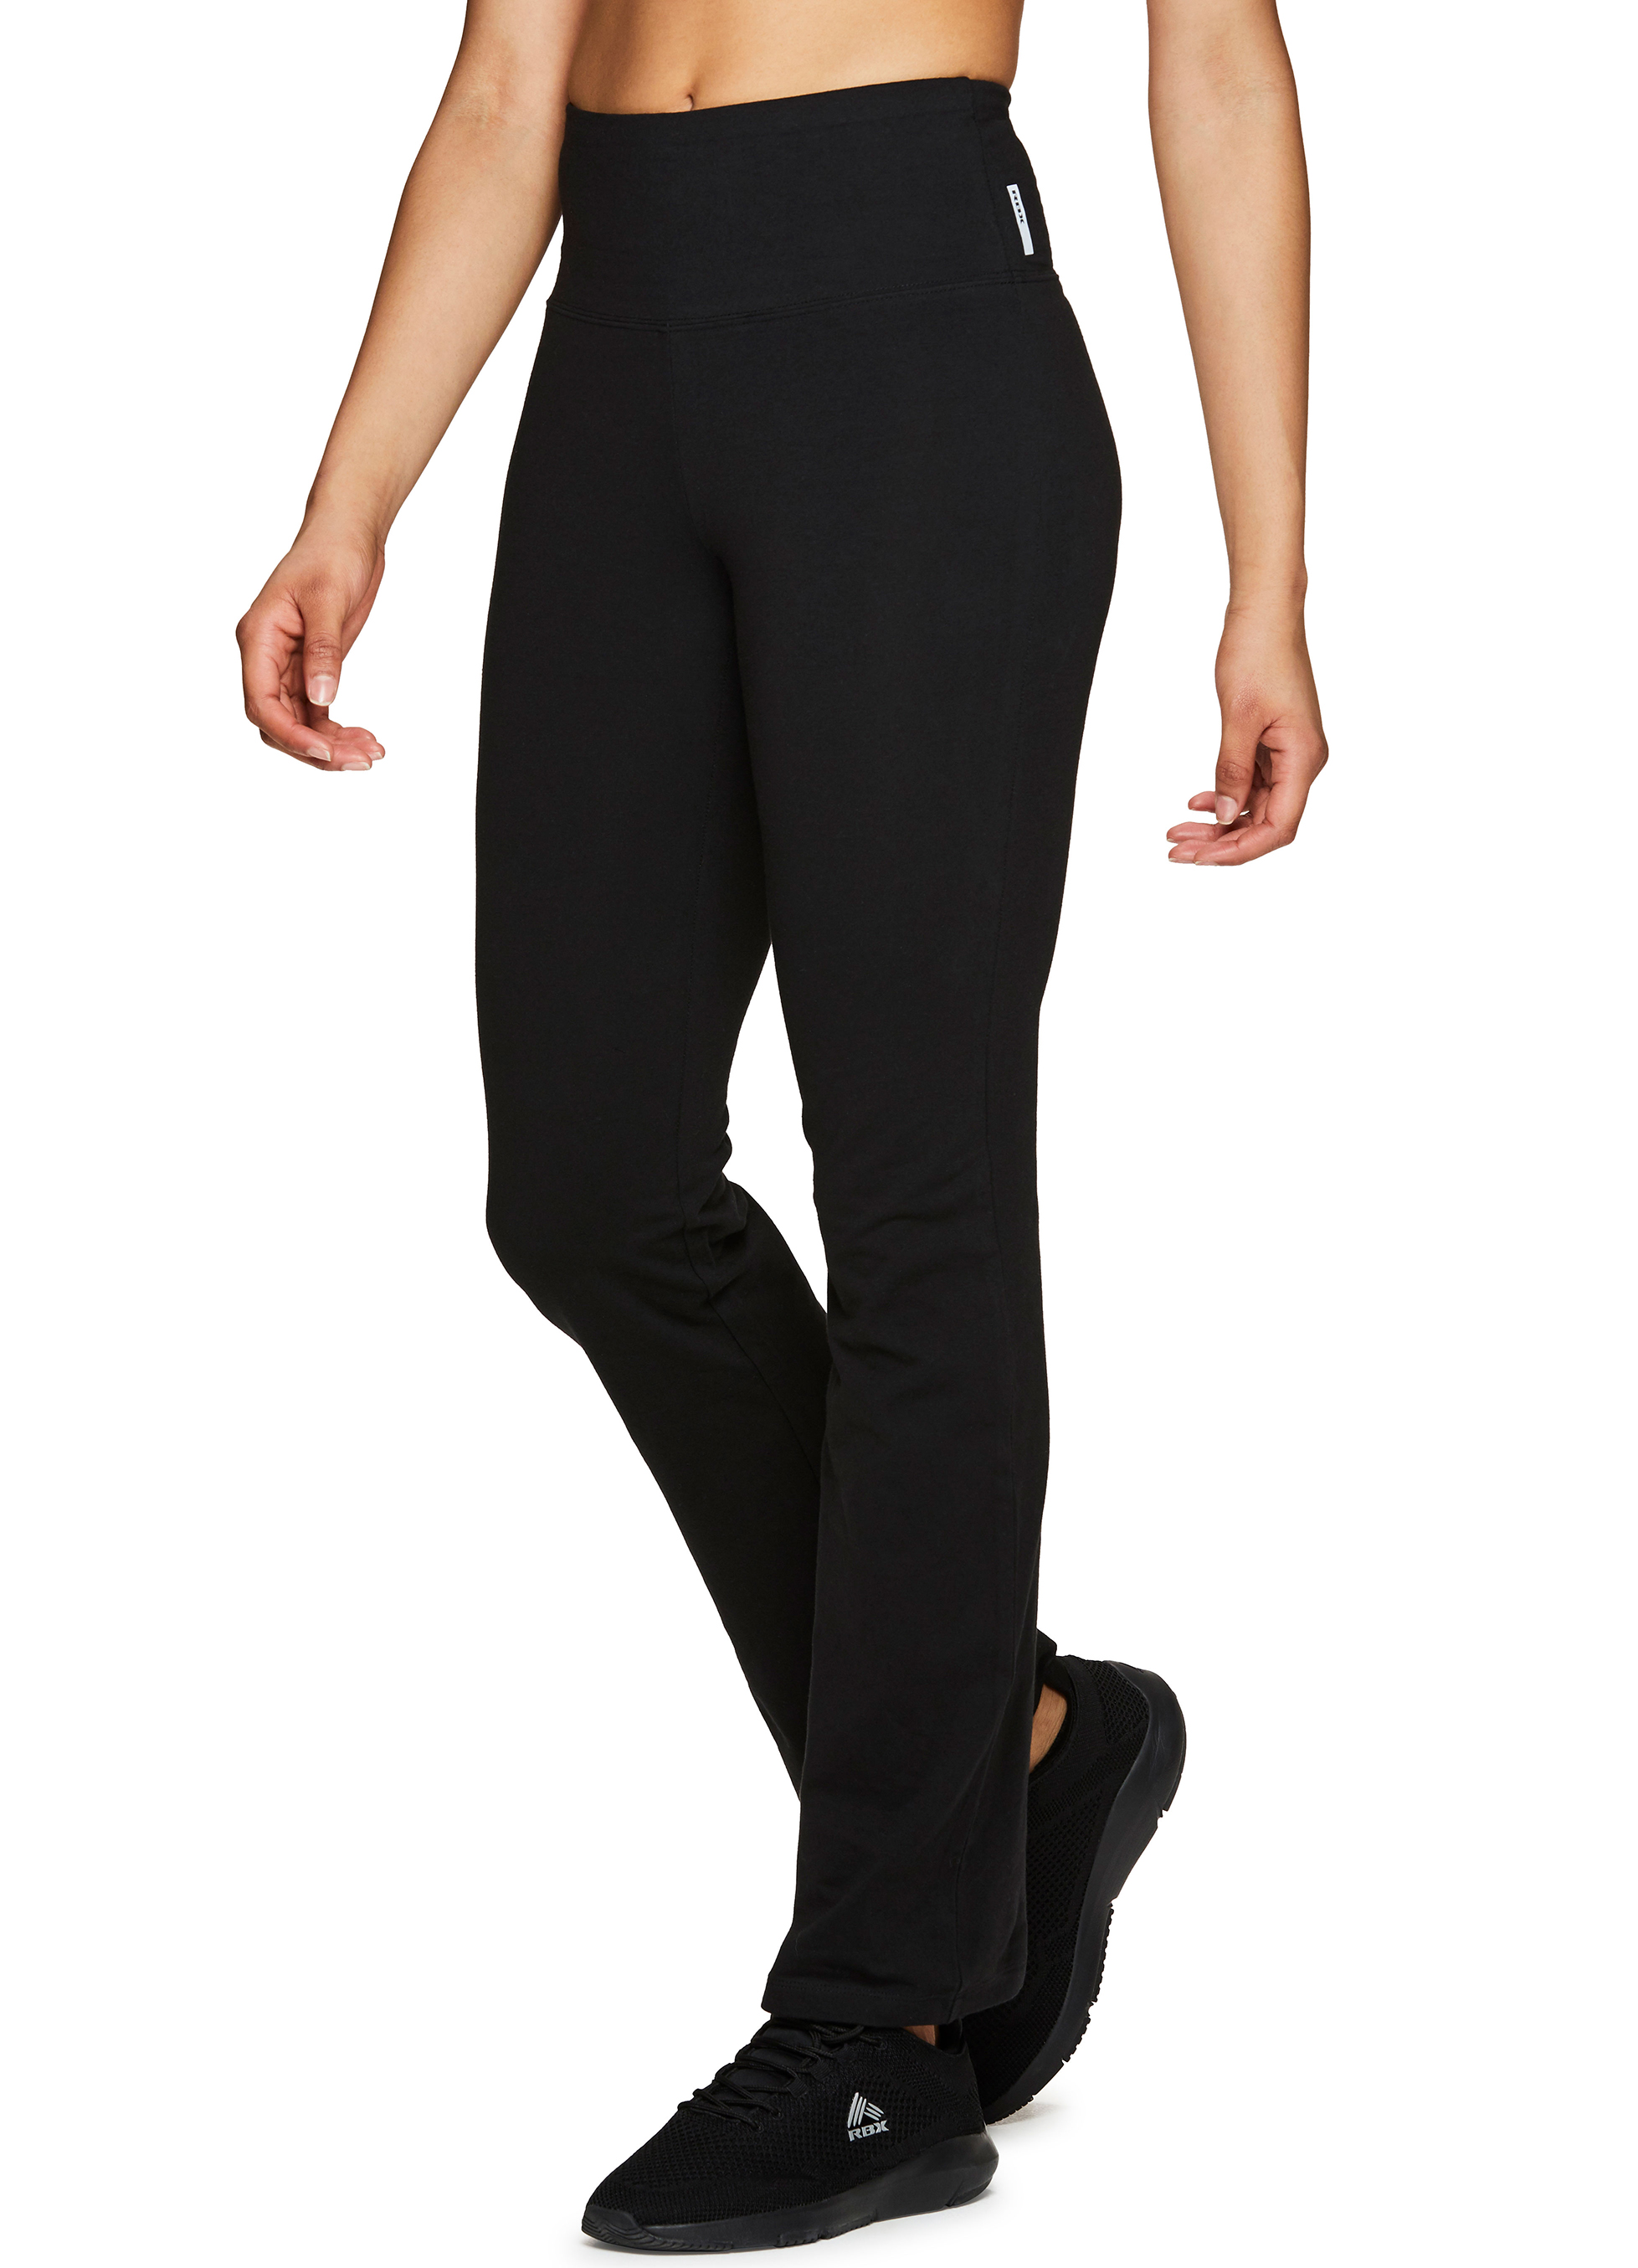 best loved value for money provide plenty of Details about RBX Active Women's Full Length Tummy Control Workout Bootcut  Yoga Pants